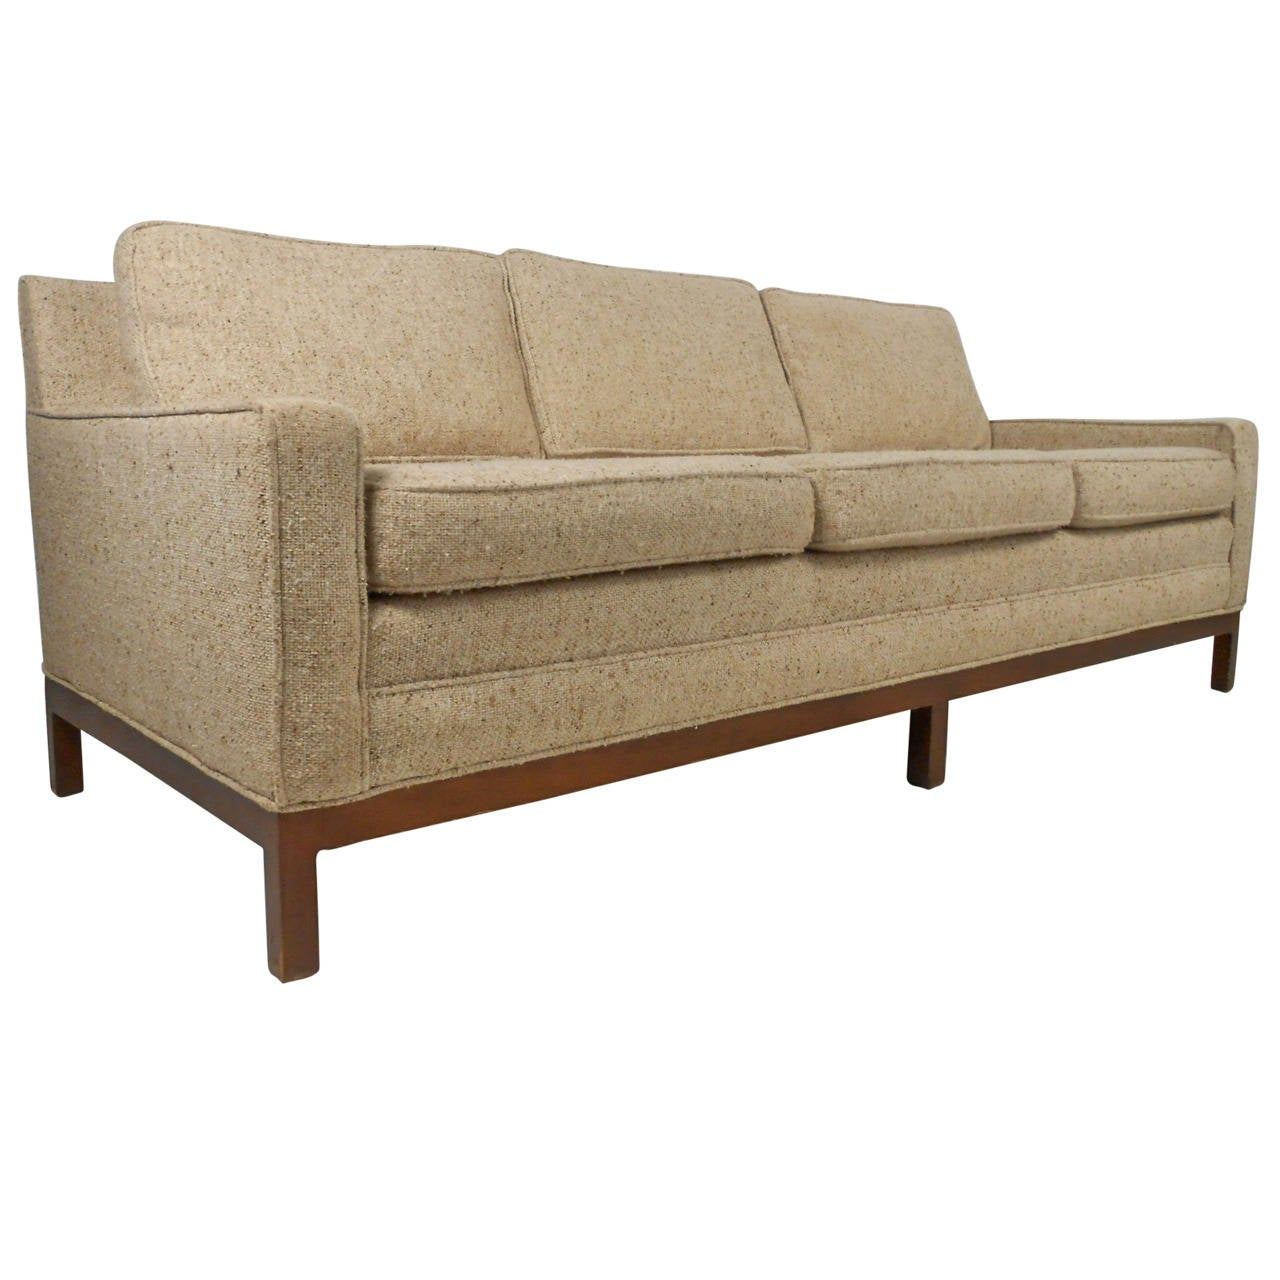 Stylish Vintage Modern Sofa After Florence Knoll For Sale At 1stdibs